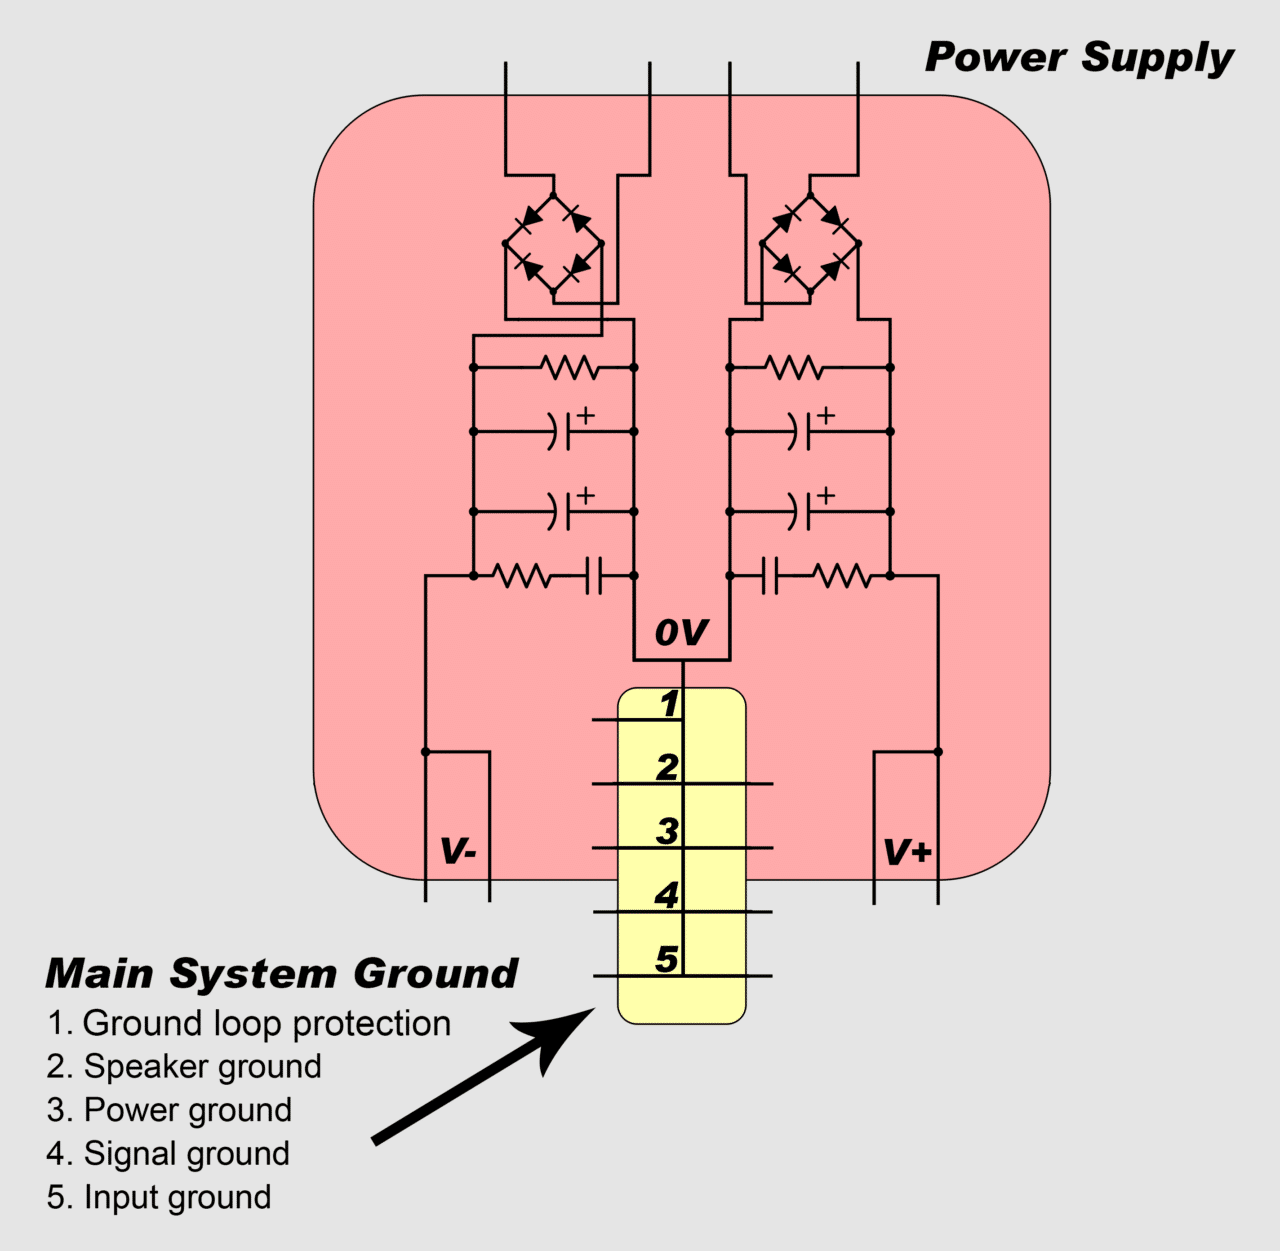 How To Design And Build An Amplifier With The Tda2050 Circuit Basics 24v Dual Power Supply Regulated Diagram Ground Networks Are Connected Main System In A Particular Order So That High Currents Only Flow Through Low Current Grounds For Very